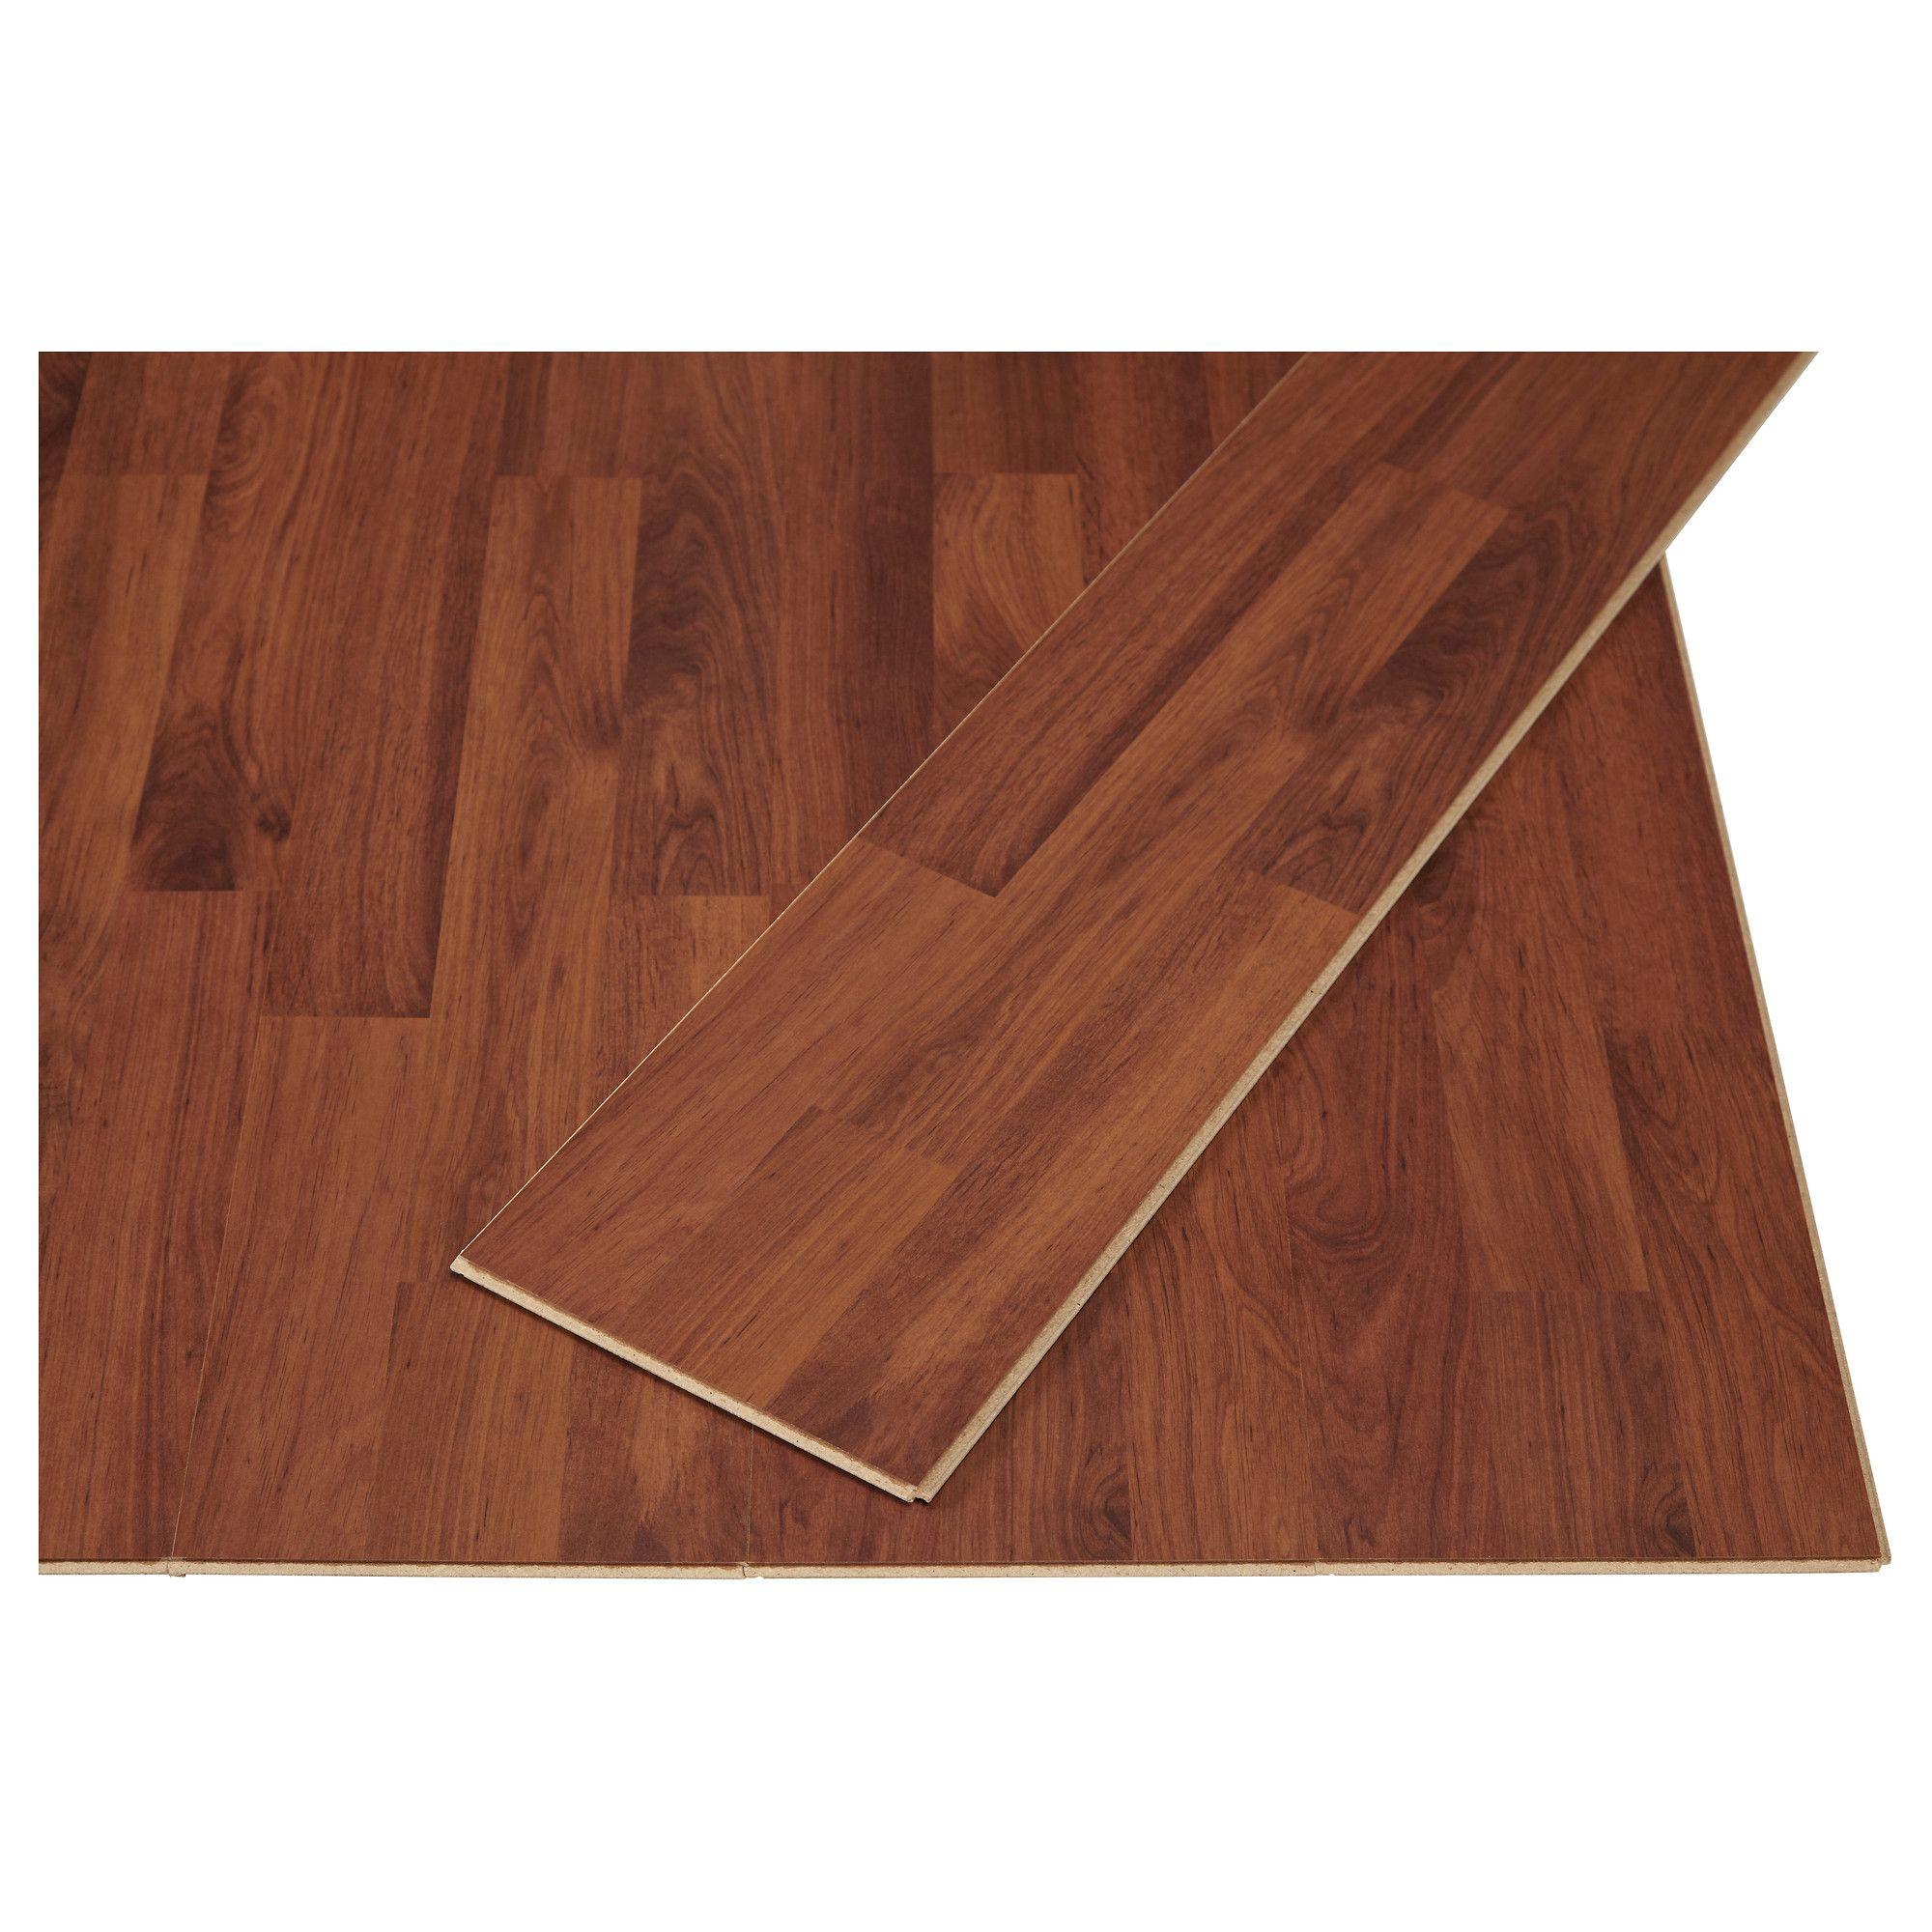 TUNDRA Laminated Flooring